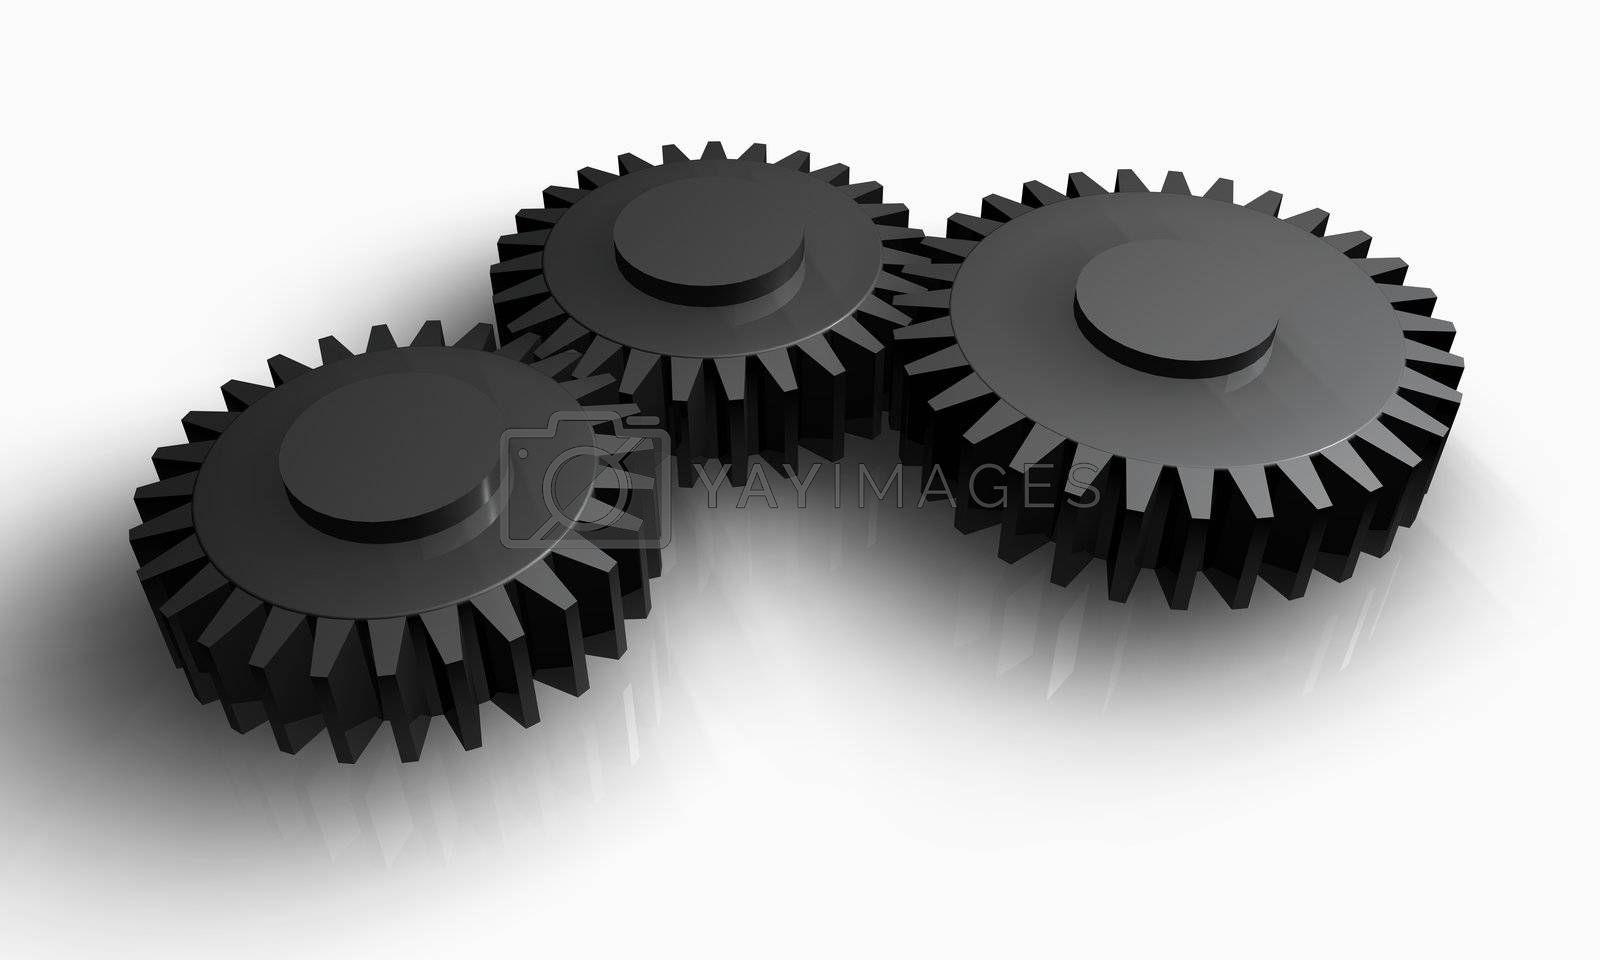 Concept of teamwork, with grey gears working together.